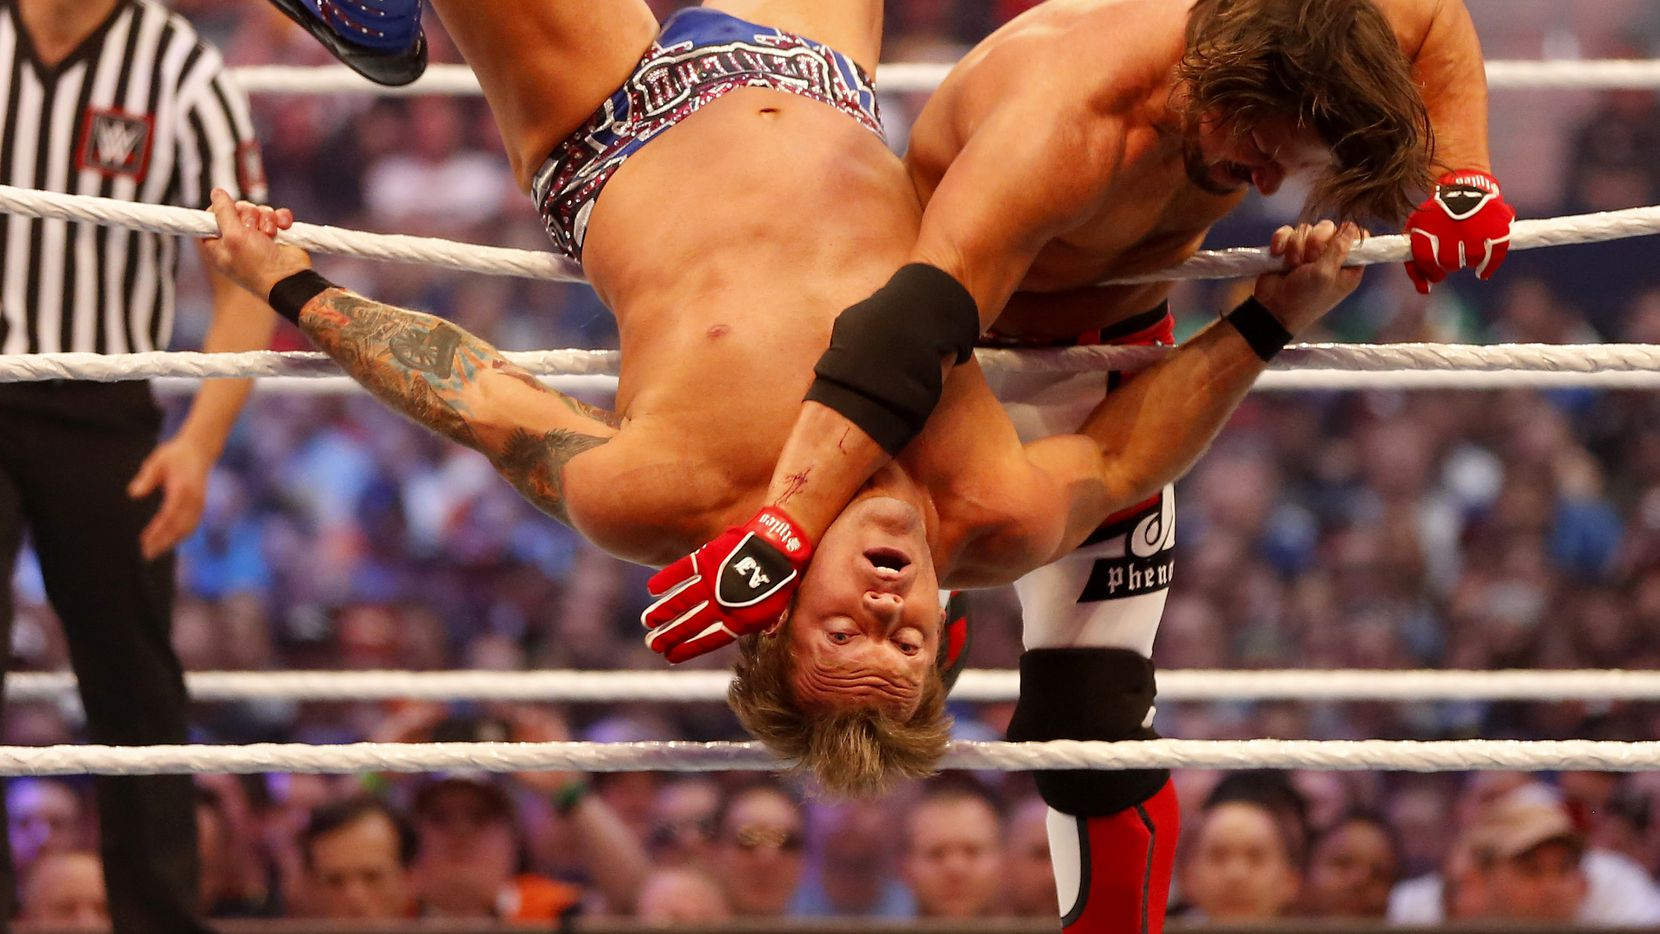 AJ Styles (right) wrestles with Chris Jericho during WrestleMania 32 at AT&T Stadium in Arlington in April.